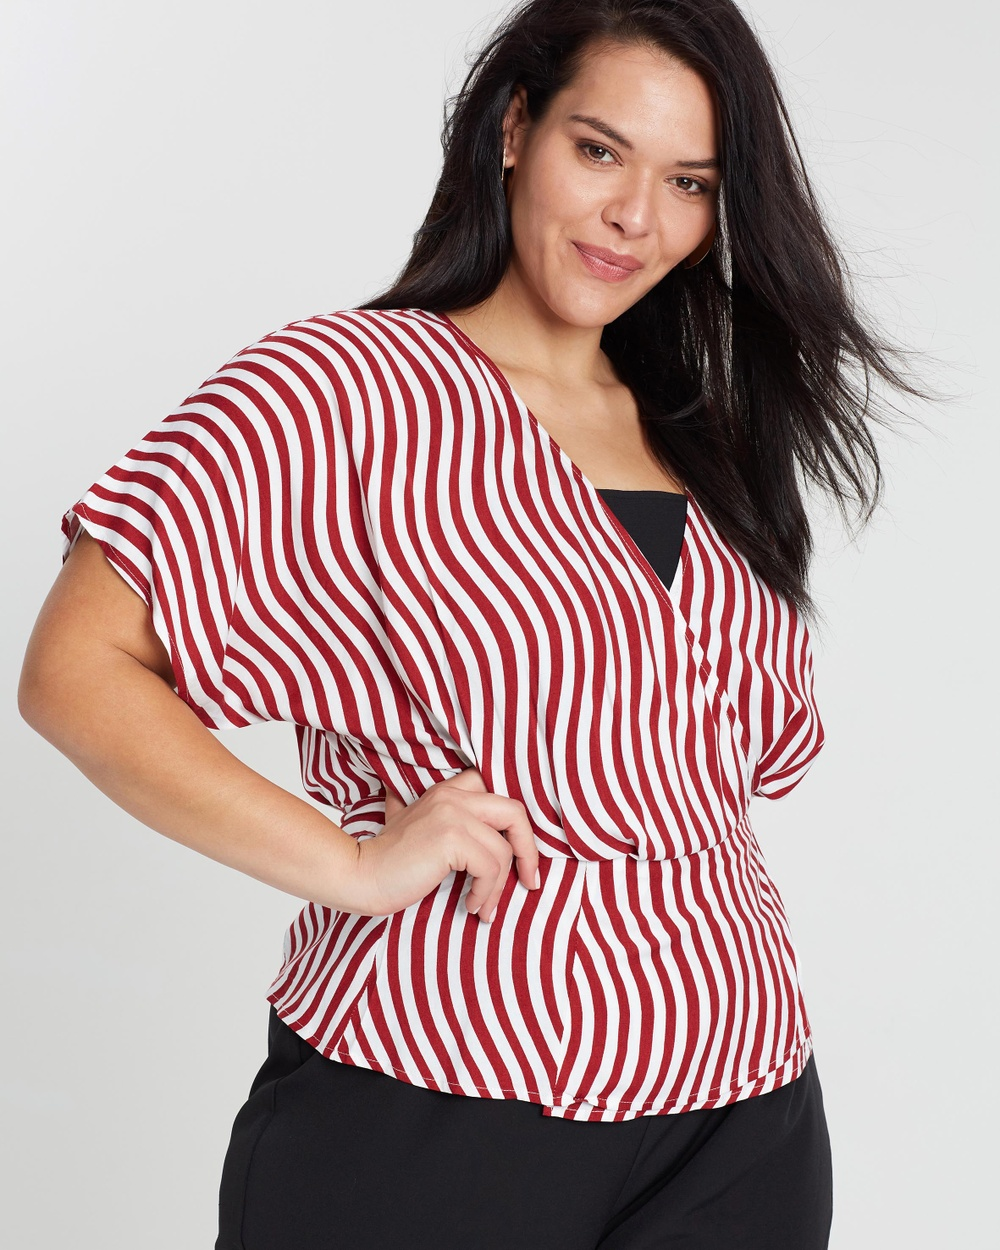 Atmos & Here Curvy ICONIC EXCLUSIVE Katie Wrap Top Tops Curvy Stripe ICONIC EXCLUSIVE Katie Wrap Top